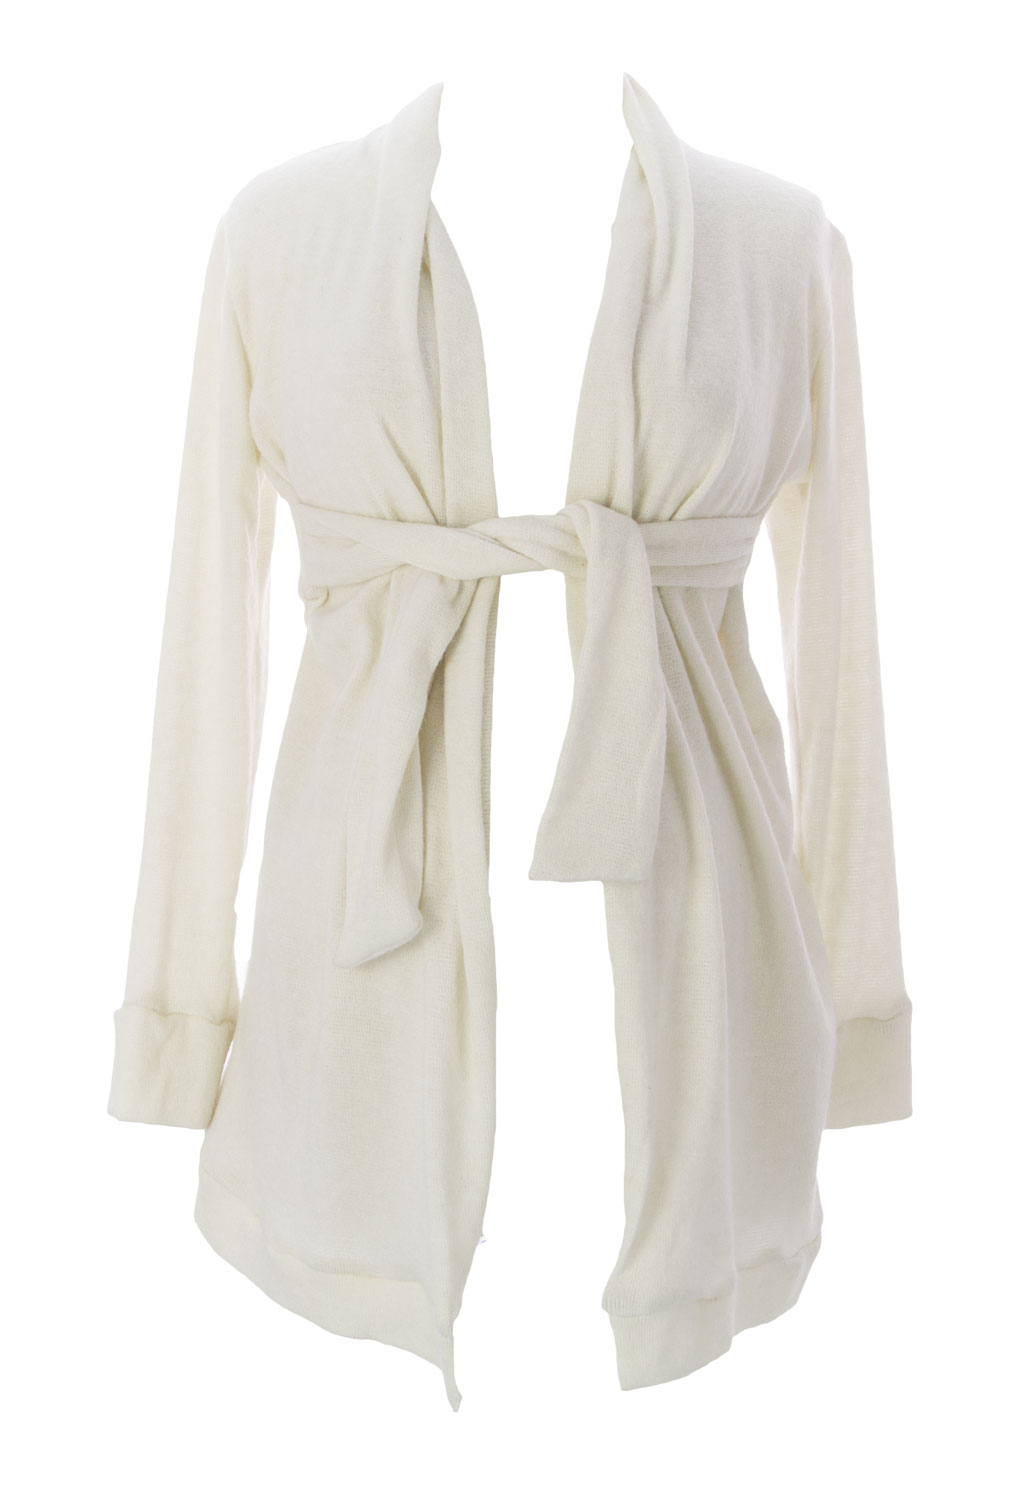 JULES & JIM Maternity Women's Belted Cardigan, Medium, Off-White